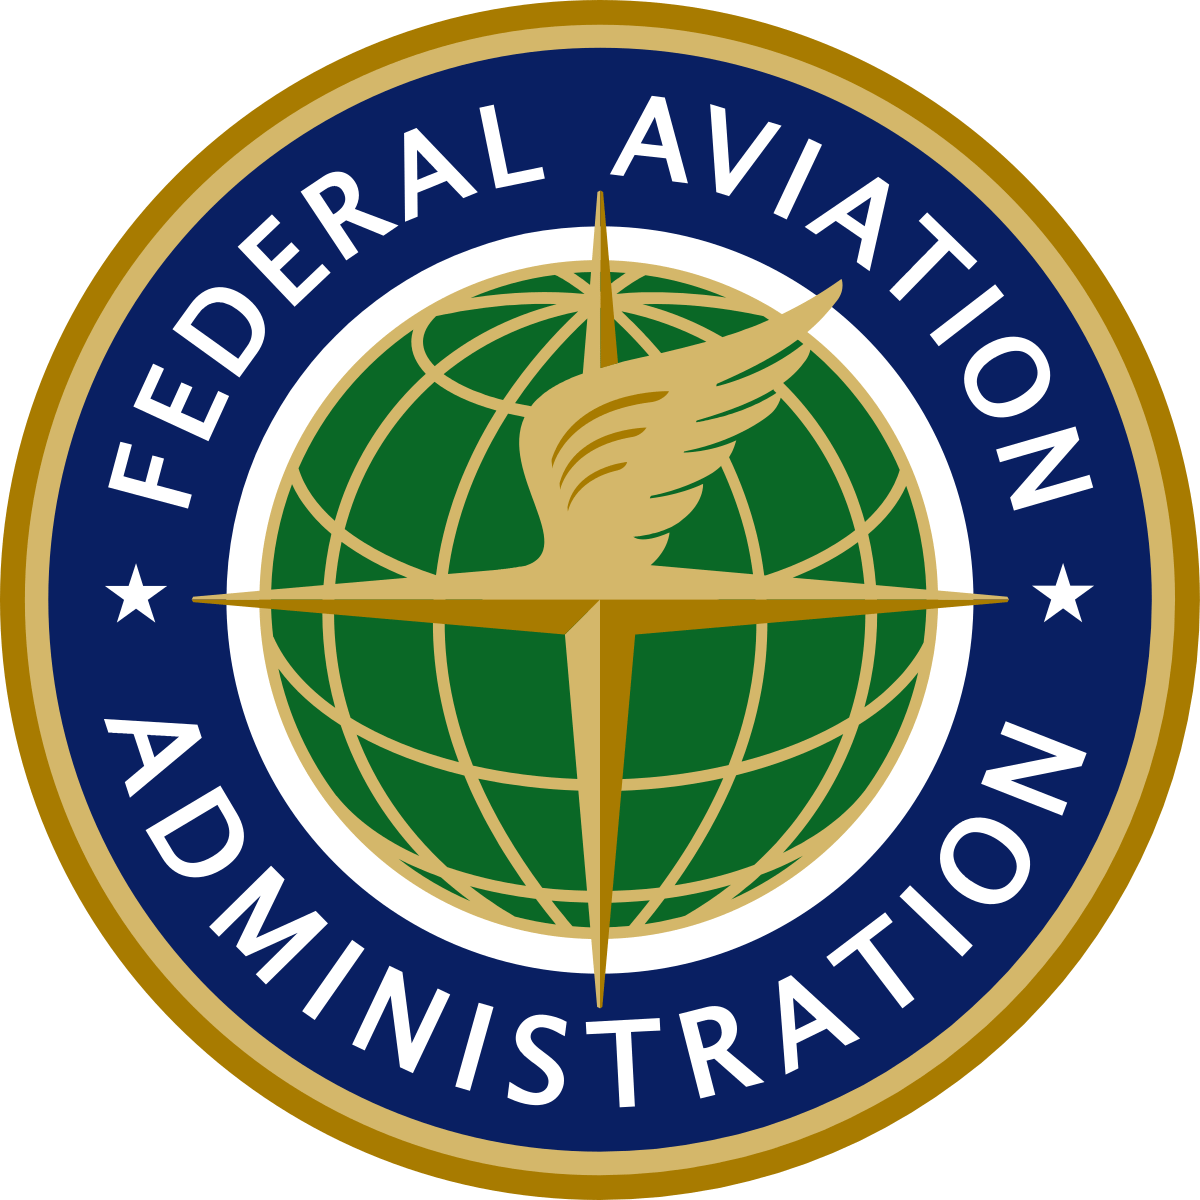 Department of Transportation (DOT) Federal Aviation Administration (FAA)